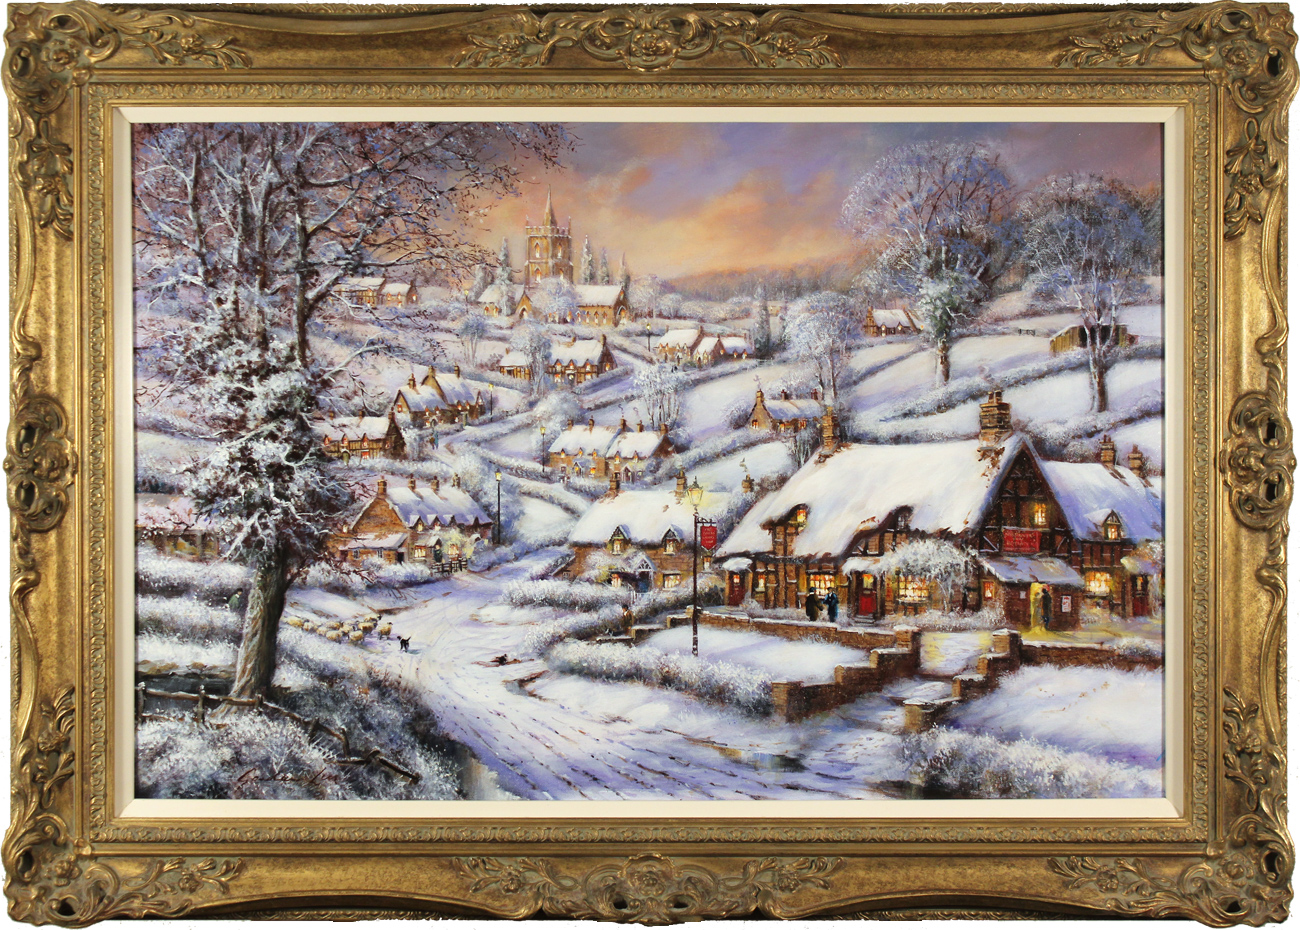 Gordon Lees, Original oil painting on canvas, A Snowy Evening at the Crossways Inn. Click to enlarge